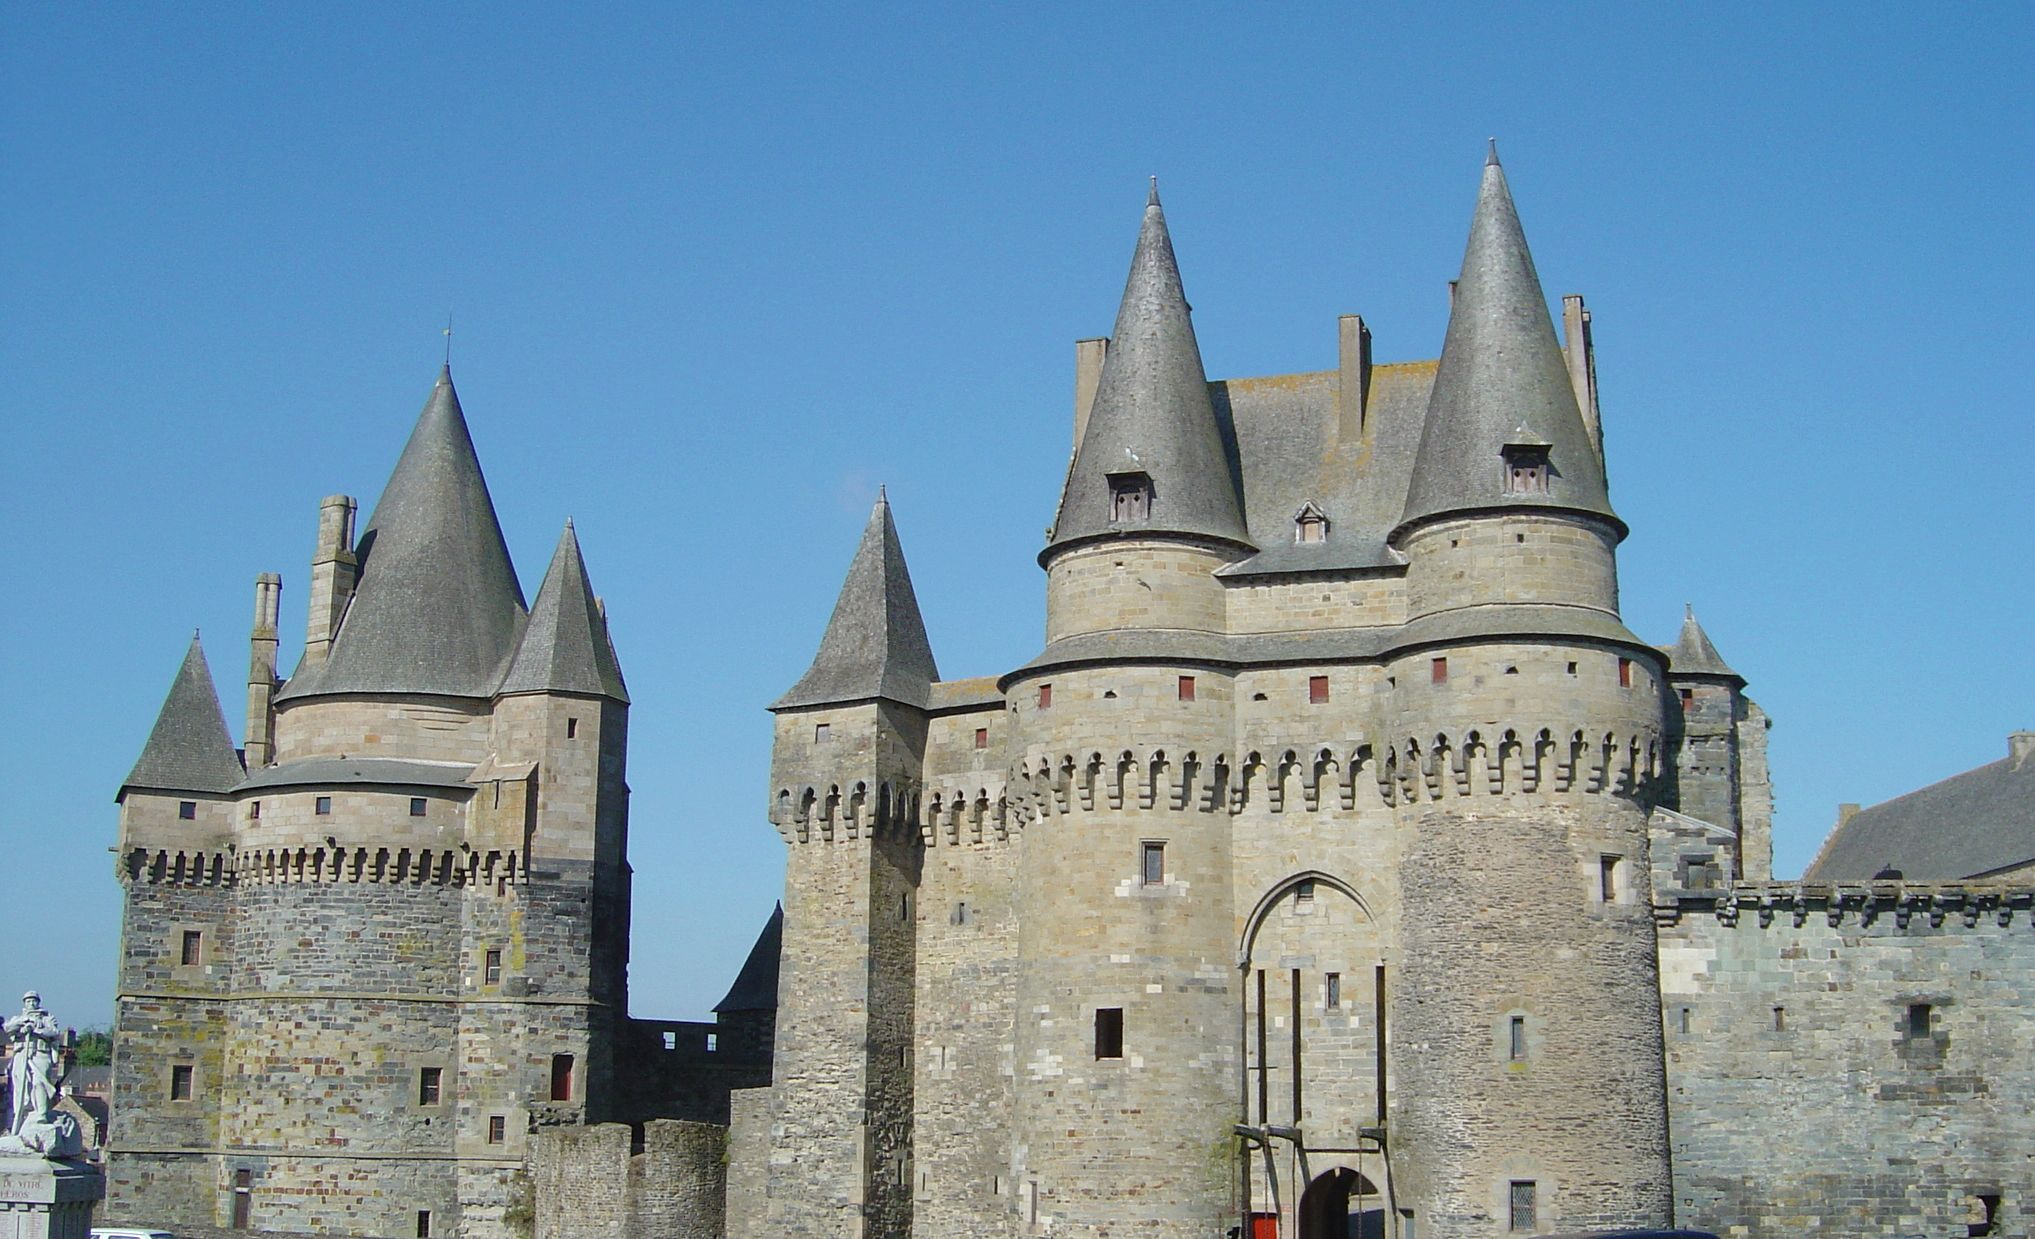 List of castles in France